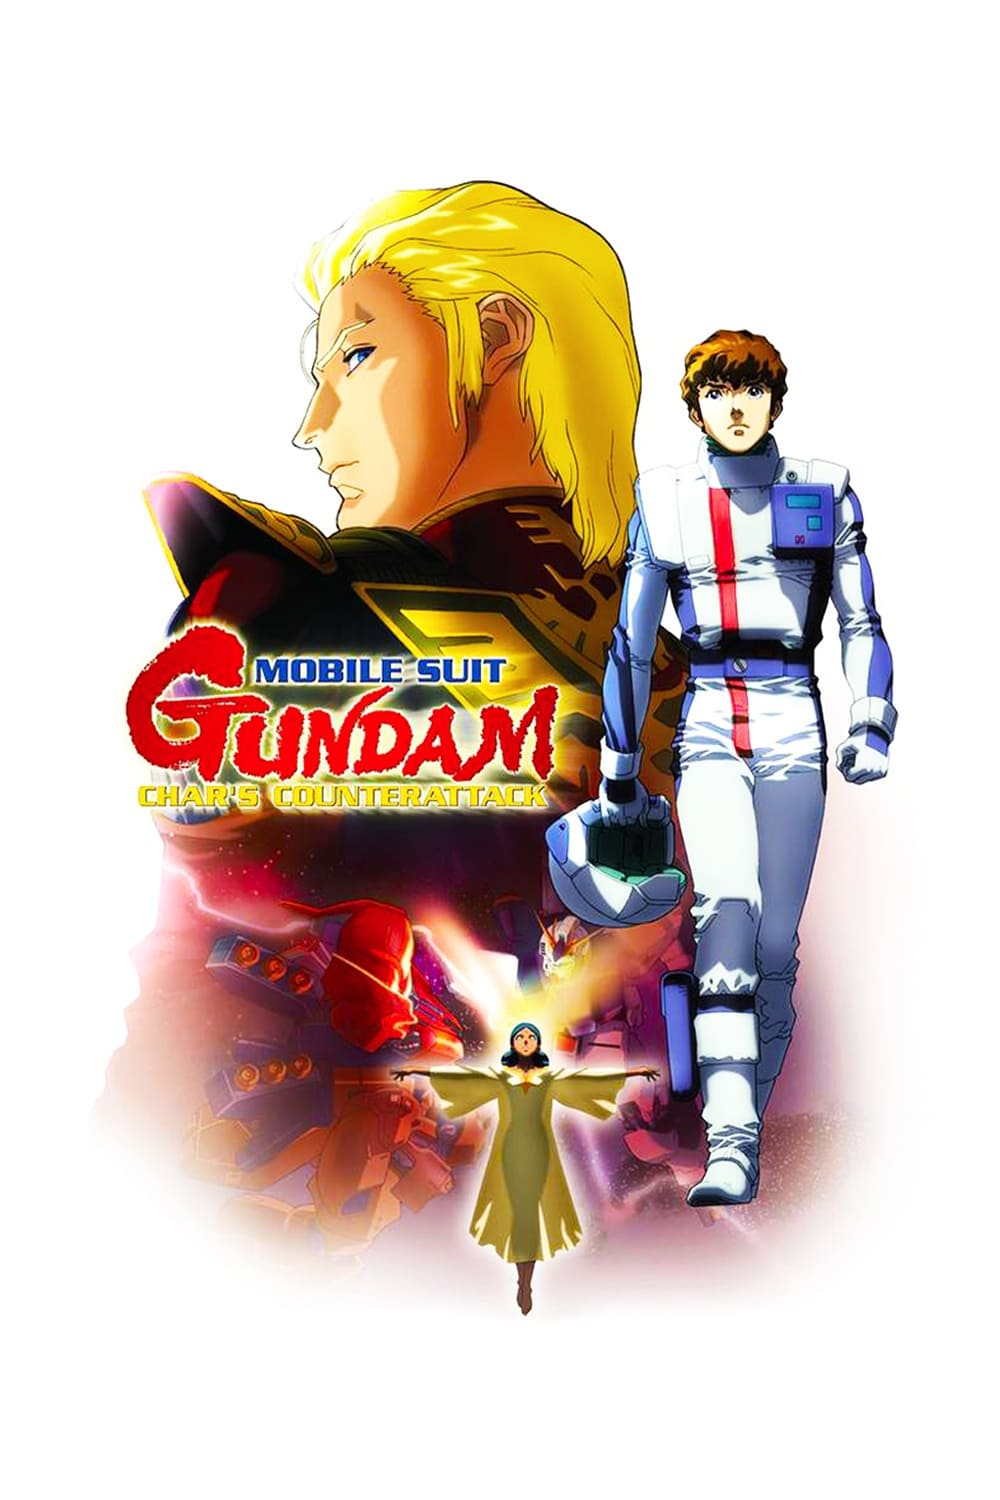 Mobile Suit Gundam: Char's Counterattack (1988)